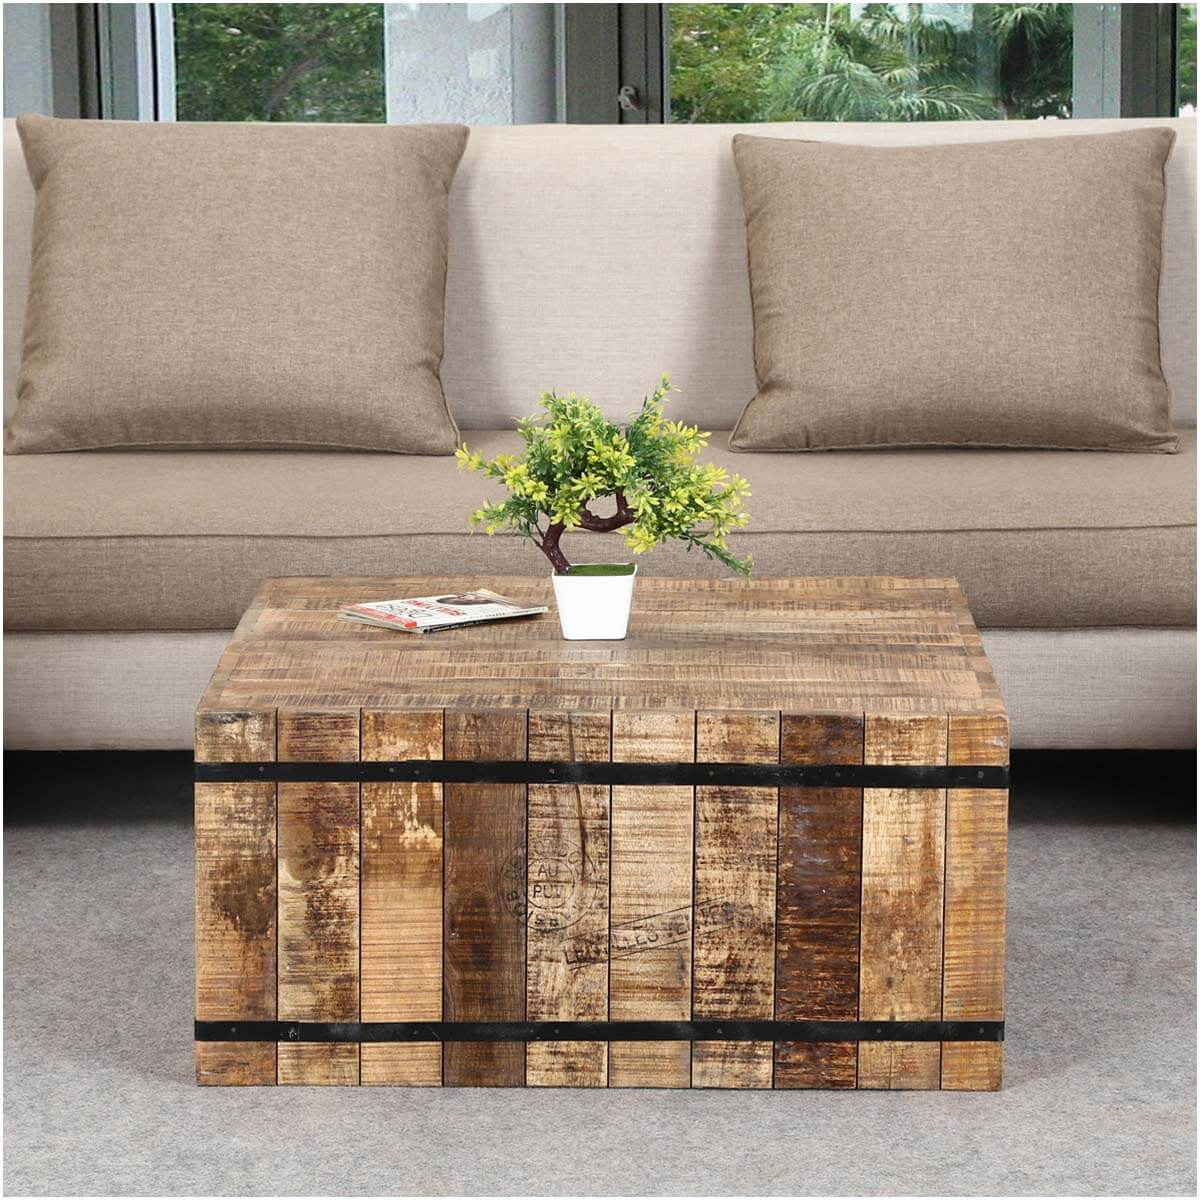 expedition rustic mango wood iron square box style. Black Bedroom Furniture Sets. Home Design Ideas